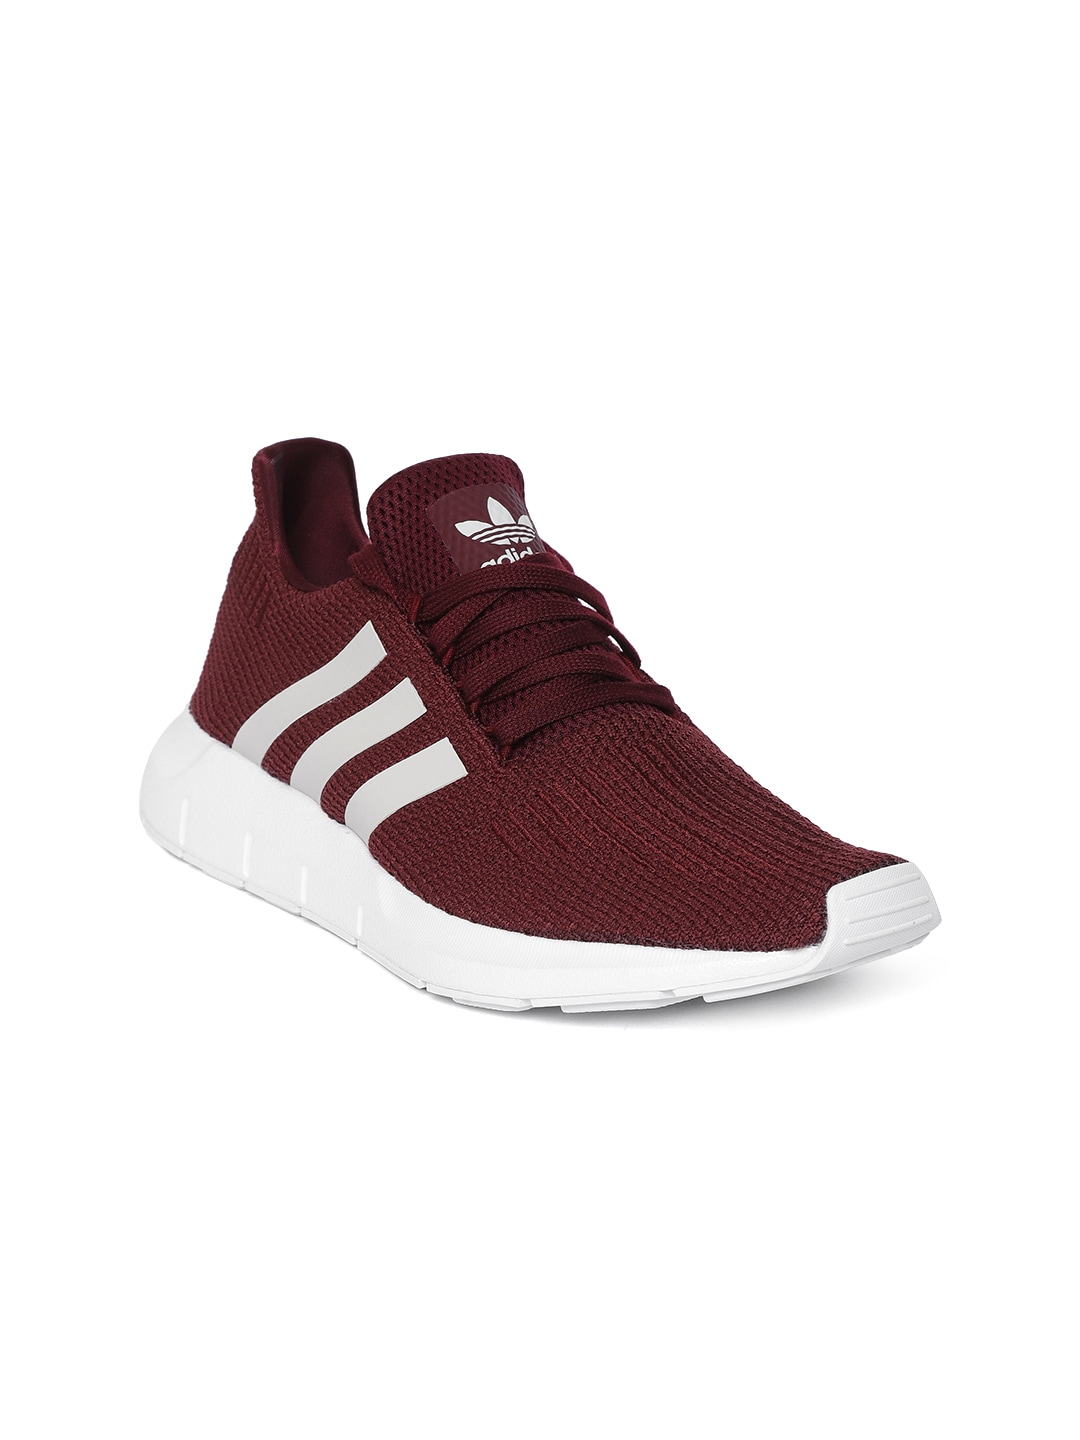 new arrival 50dc0 67b94 Women s Adidas Shoes - Buy Adidas Shoes for Women Online in India